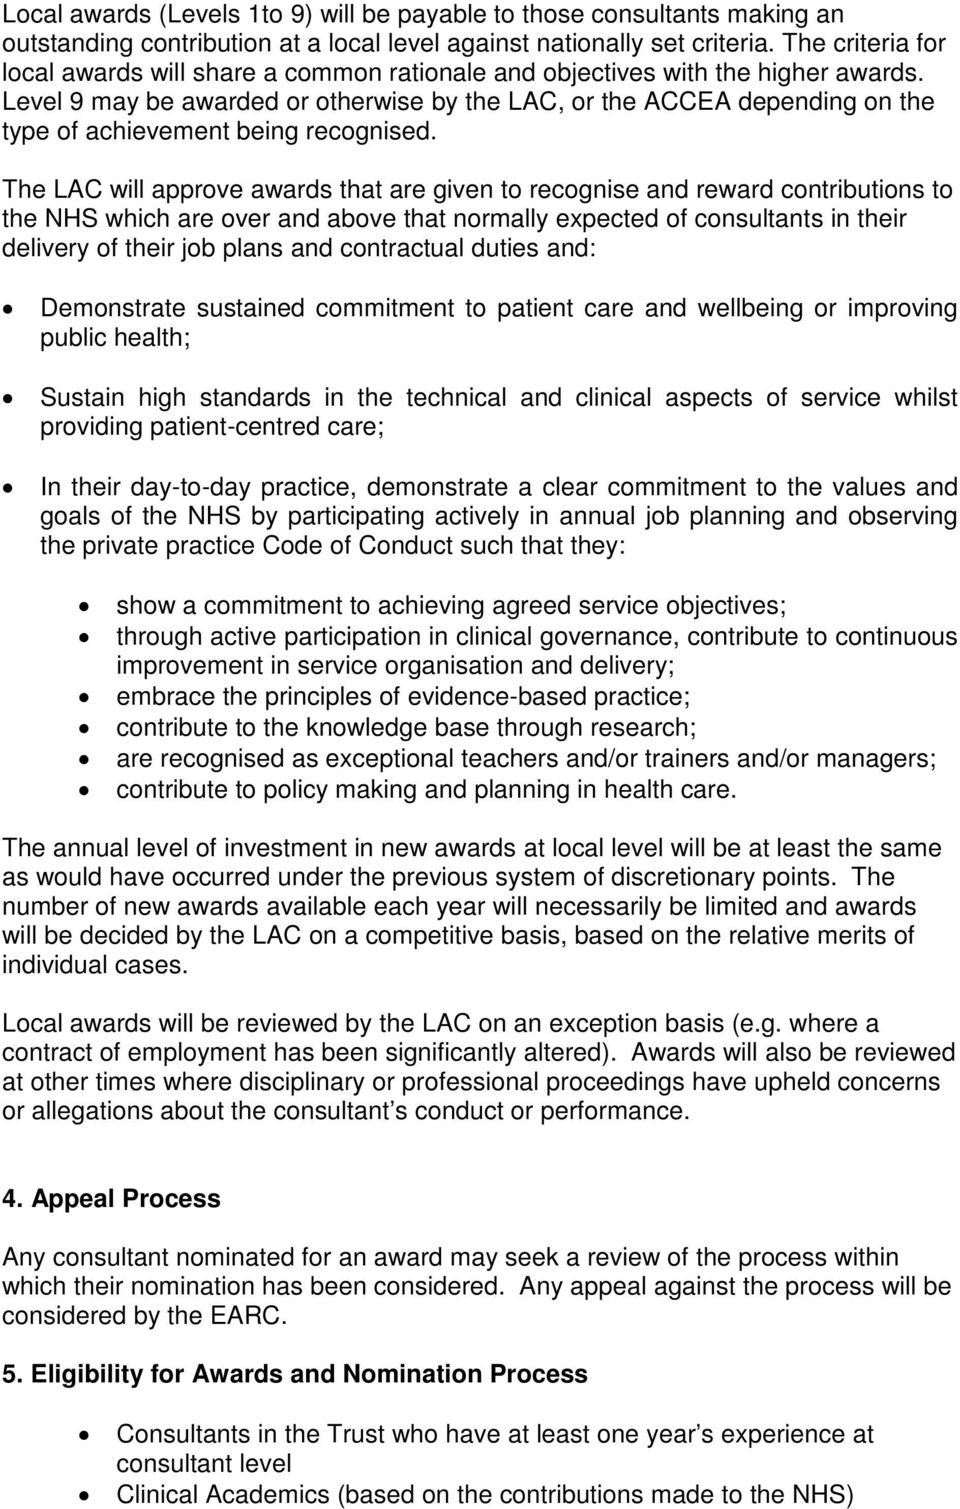 Level 9 may be awarded or otherwise by the LAC, or the ACCEA depending on the type of achievement being recognised.